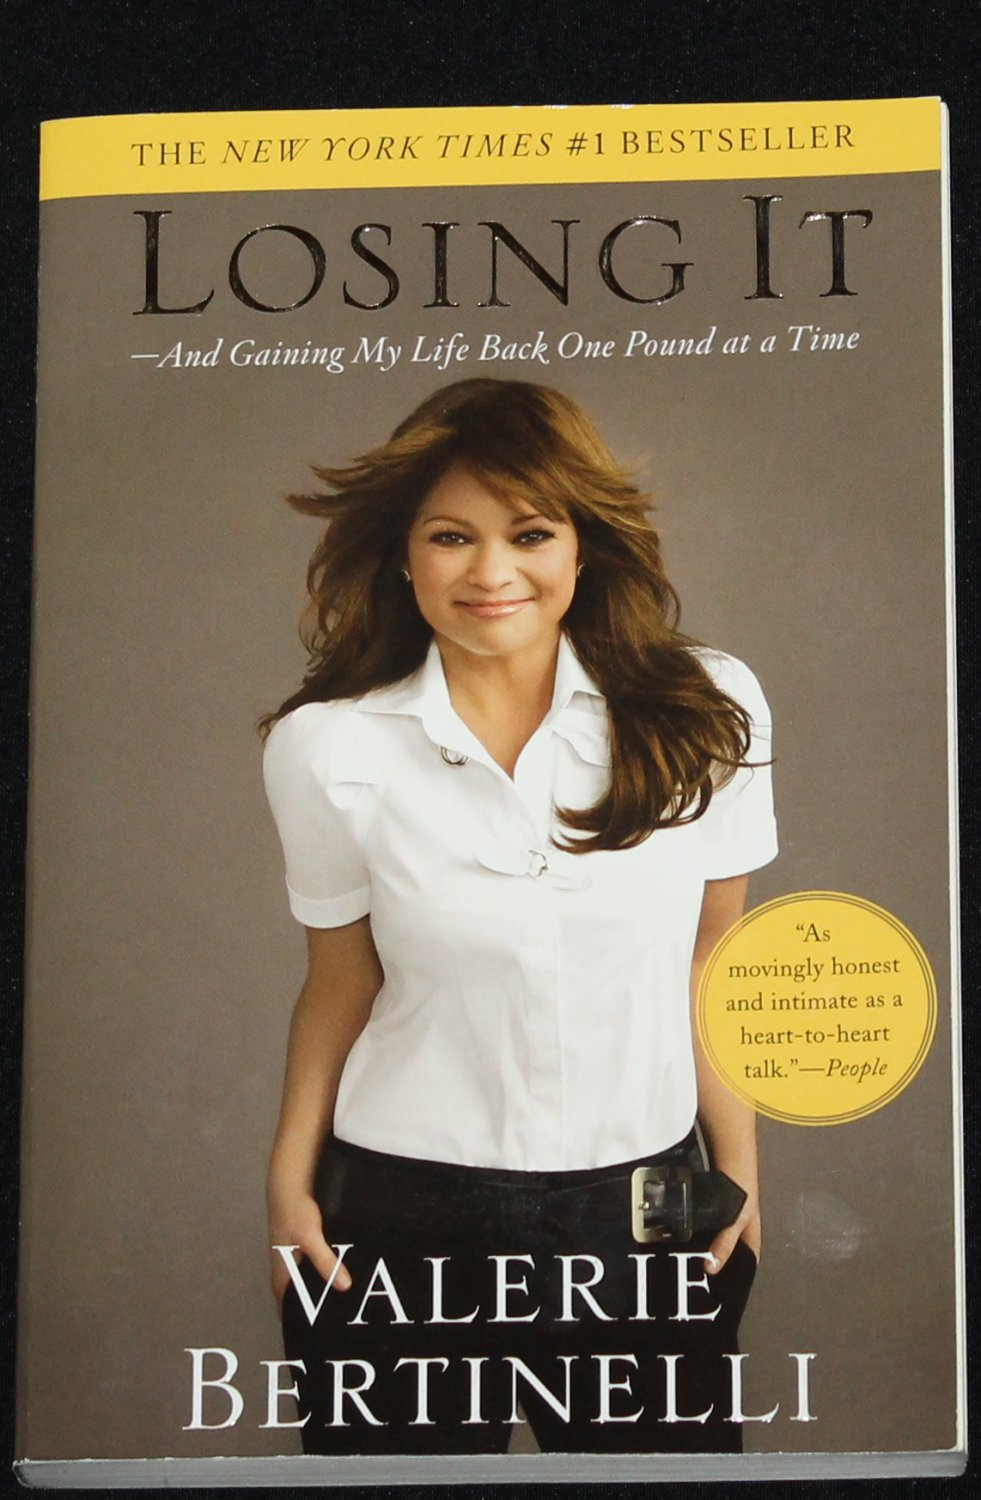 Losing It by Valerie Bertinelli weight-loss book celebrity health fit slim trim lose weight book